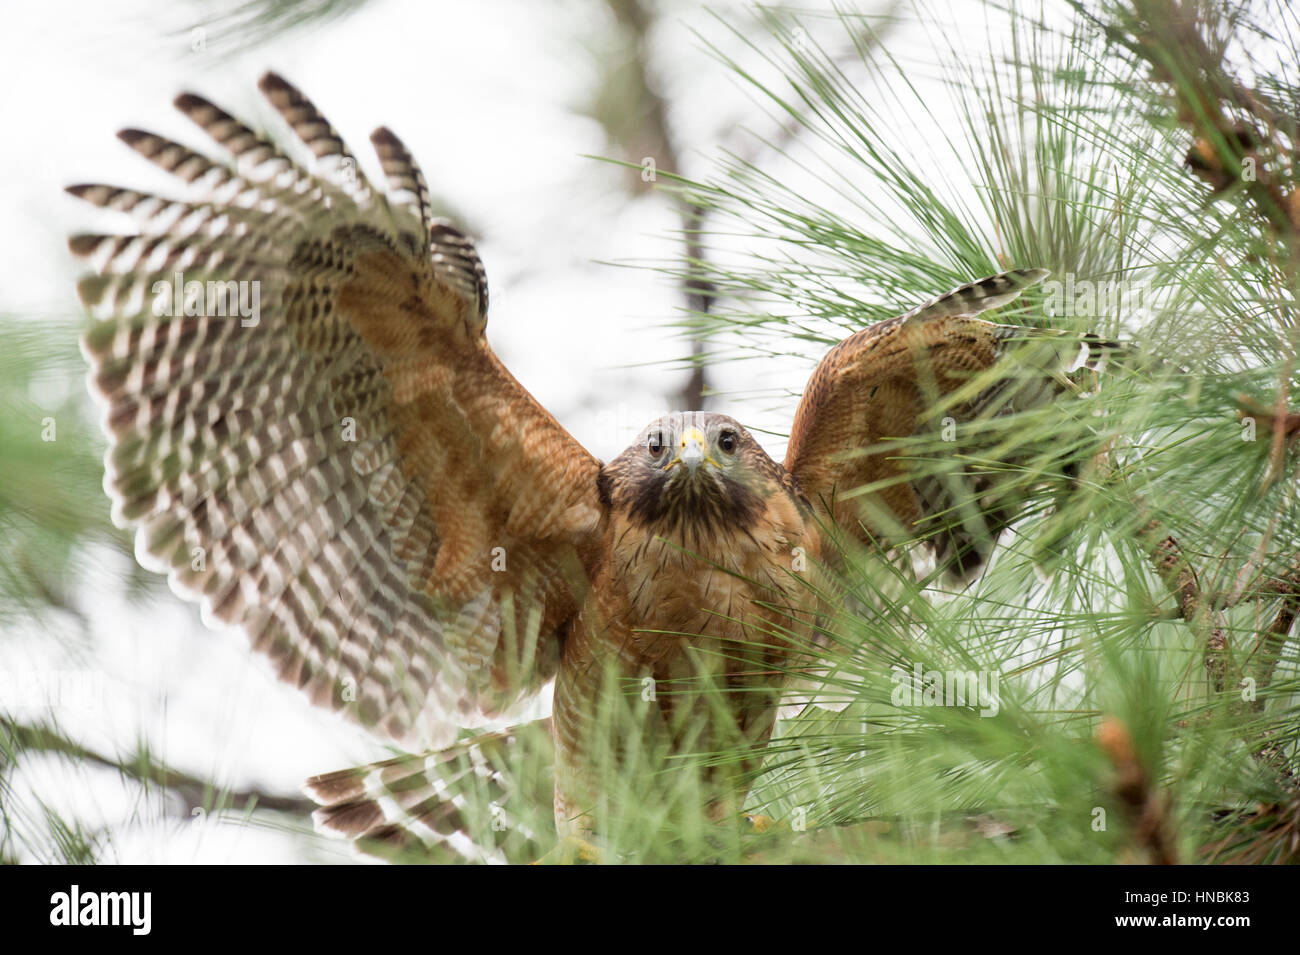 A Red-shouldered Hawk flaps its wings while standing in a pine tree in soft overcast light. - Stock Image